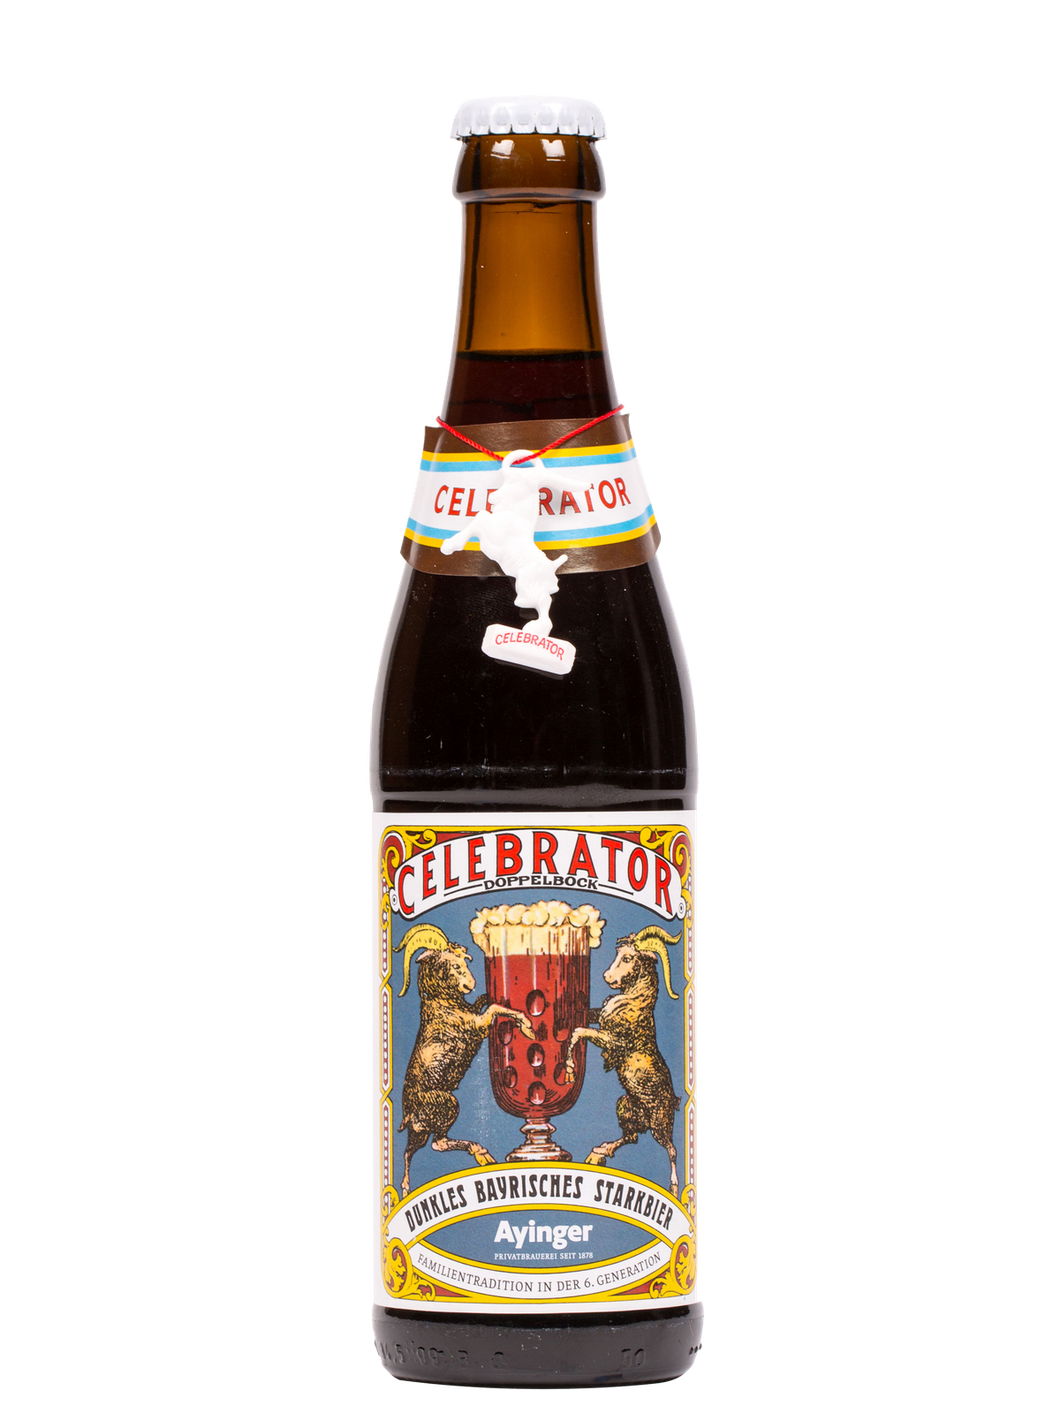 Ayinger Celebrator - Ayinger Privatbrauerei - Doppelbock, 6.7%, 330, Bottle